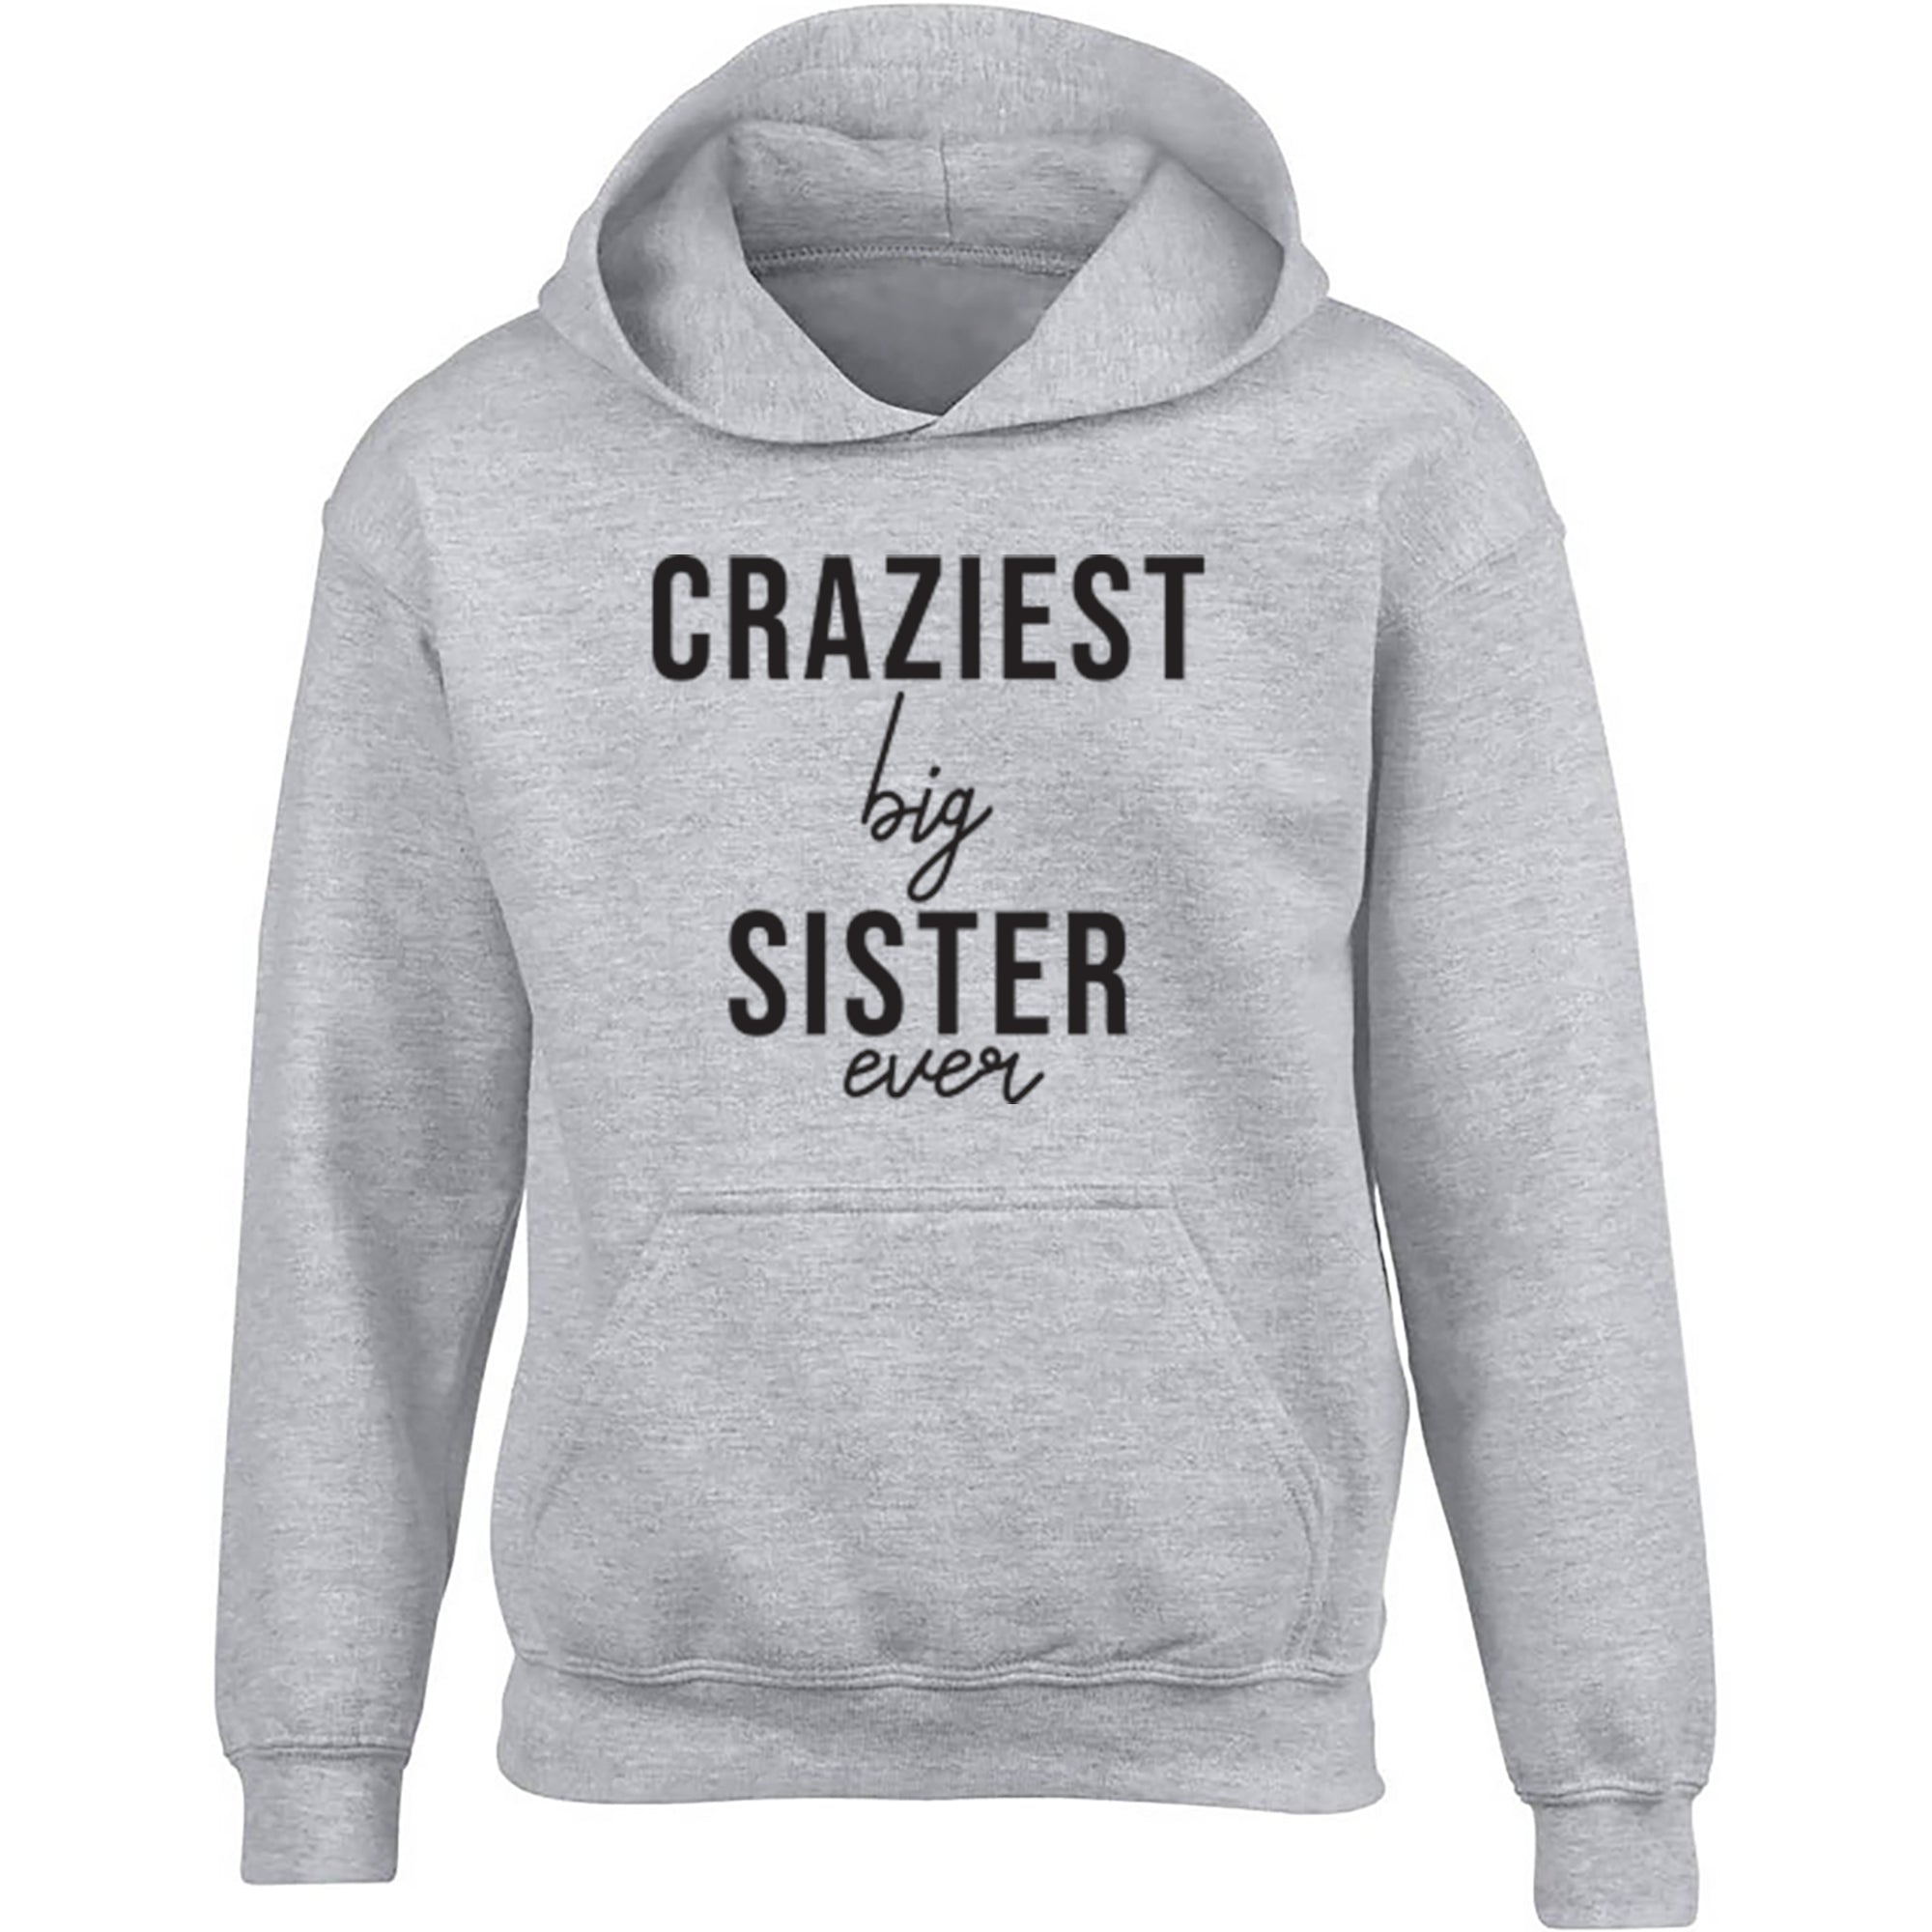 Craziest Big Sister Ever Childrens Ages 3/4-12/14 Unisex Hoodie S0512 - Illustrated Identity Ltd.